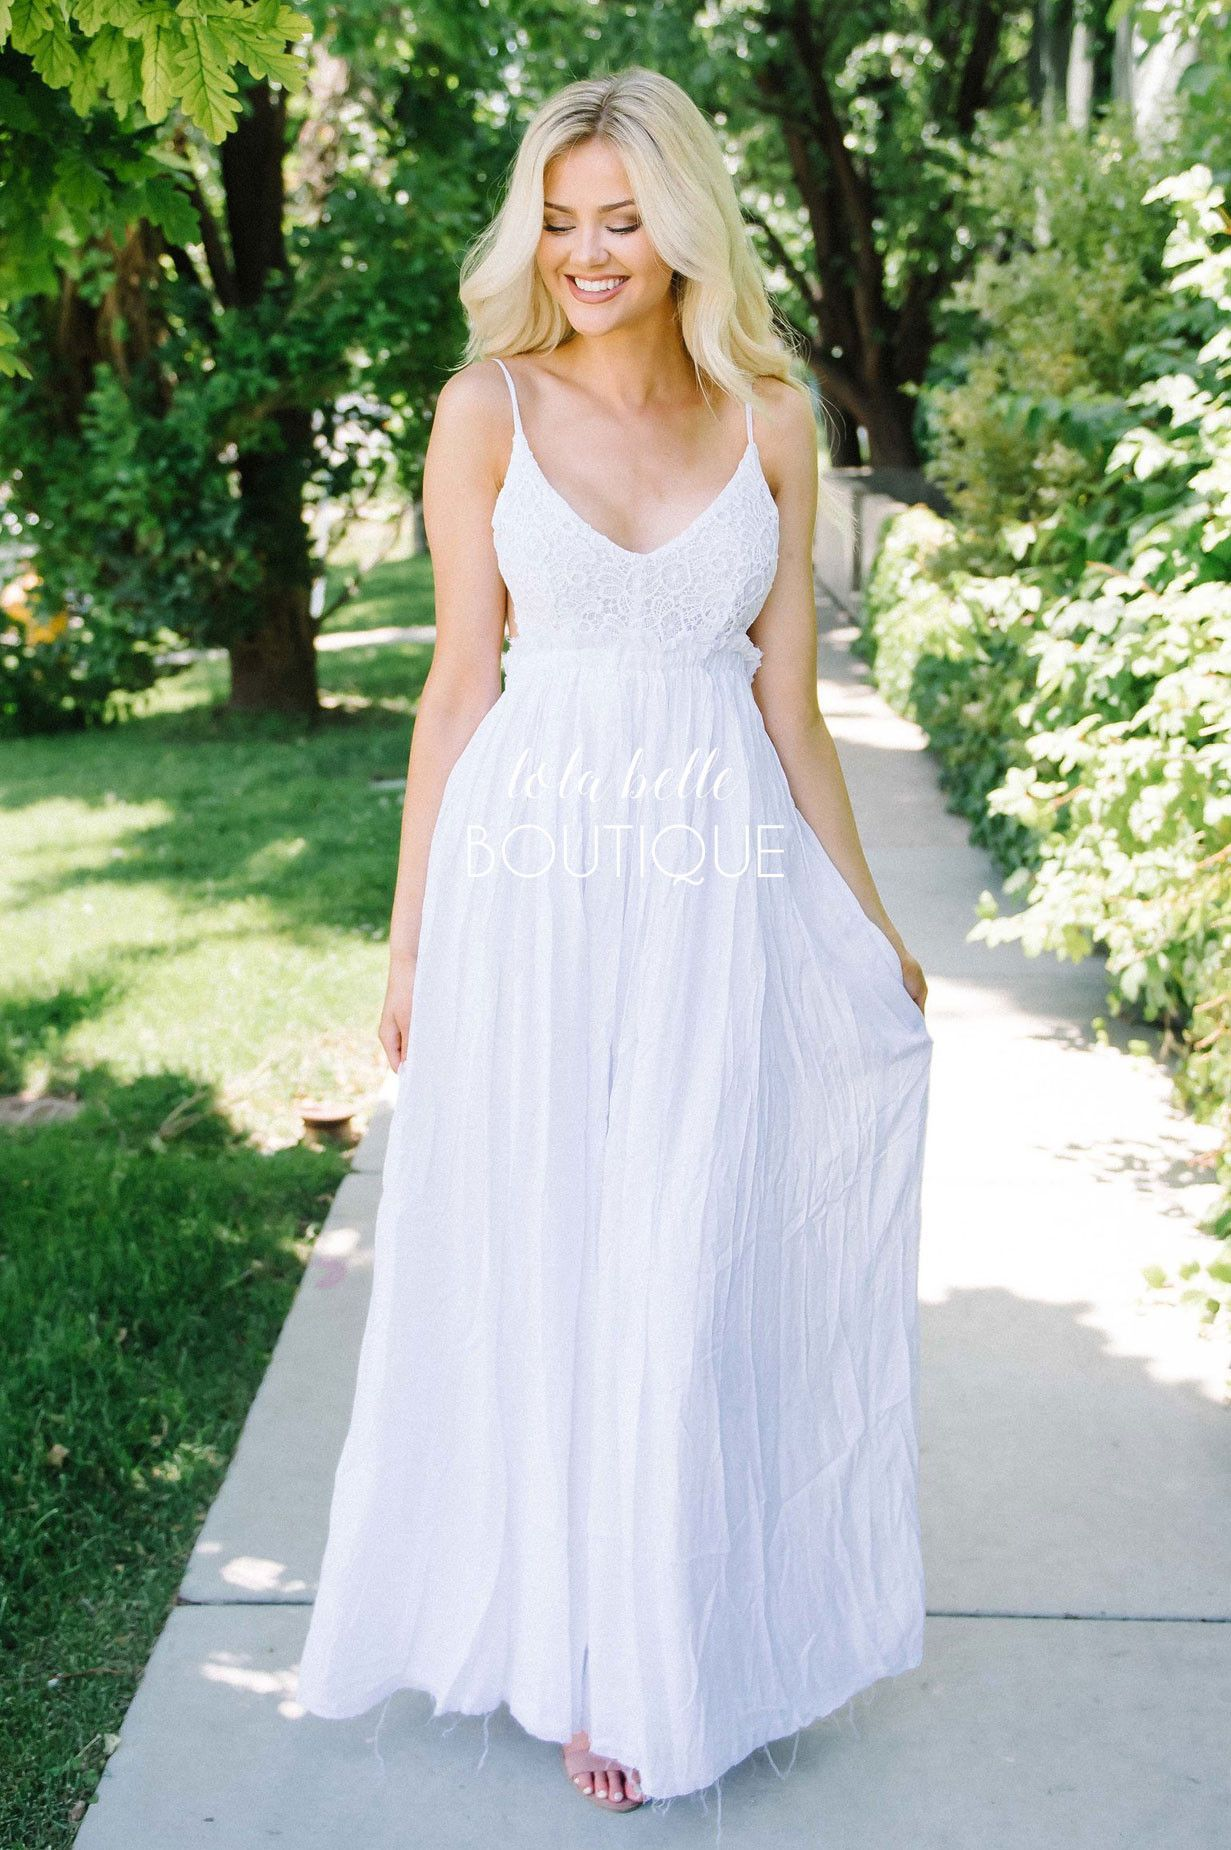 Green and white wedding dress  Swan Princess Full Length Dress in White  Products